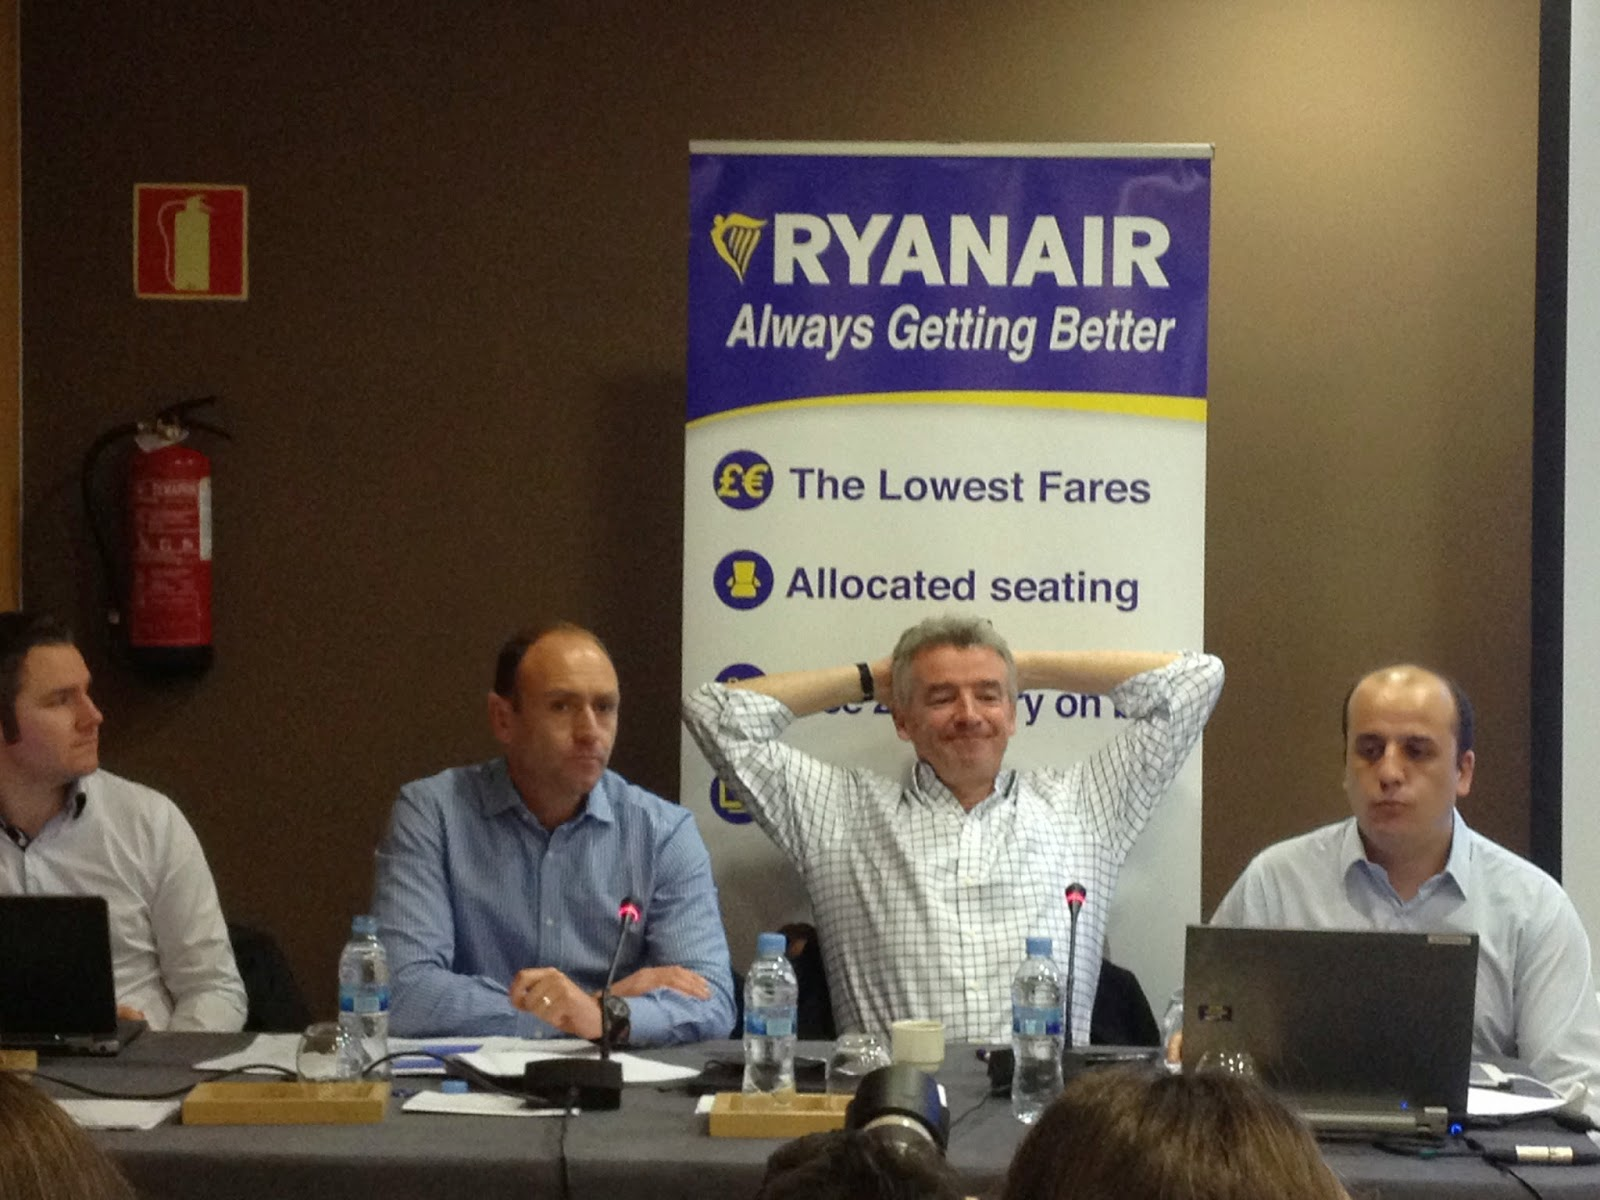 ryanair Michael O´Leary Always Getting Better Precios Bajos Low Cost